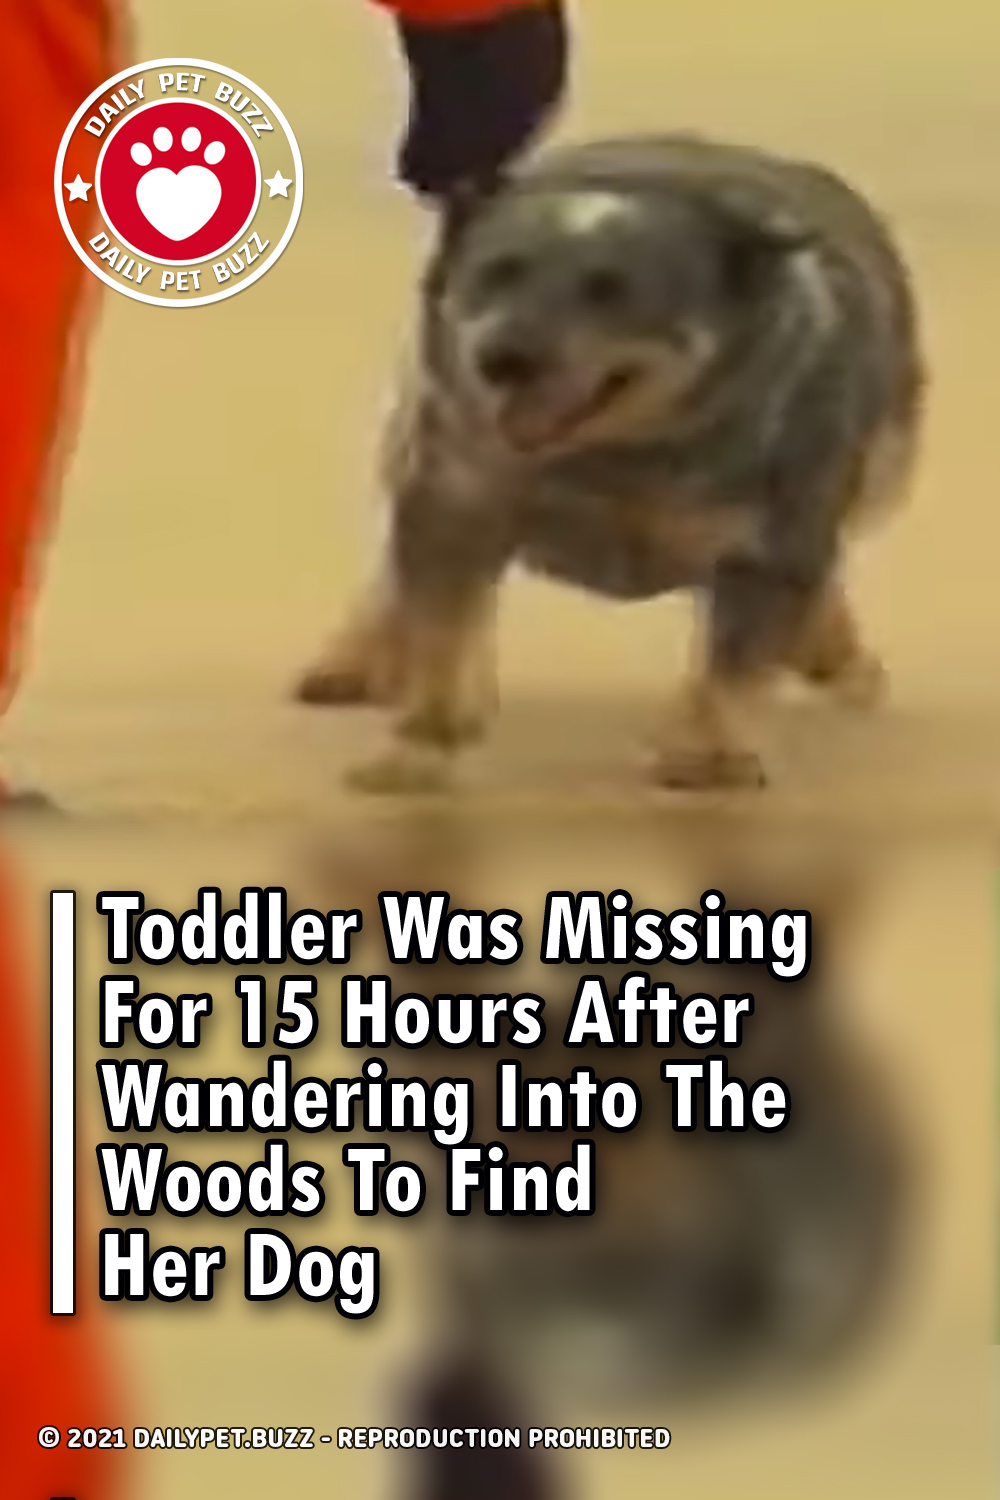 Toddler Was Missing For 15 Hours After Wandering Into The Woods To Find Her Dog